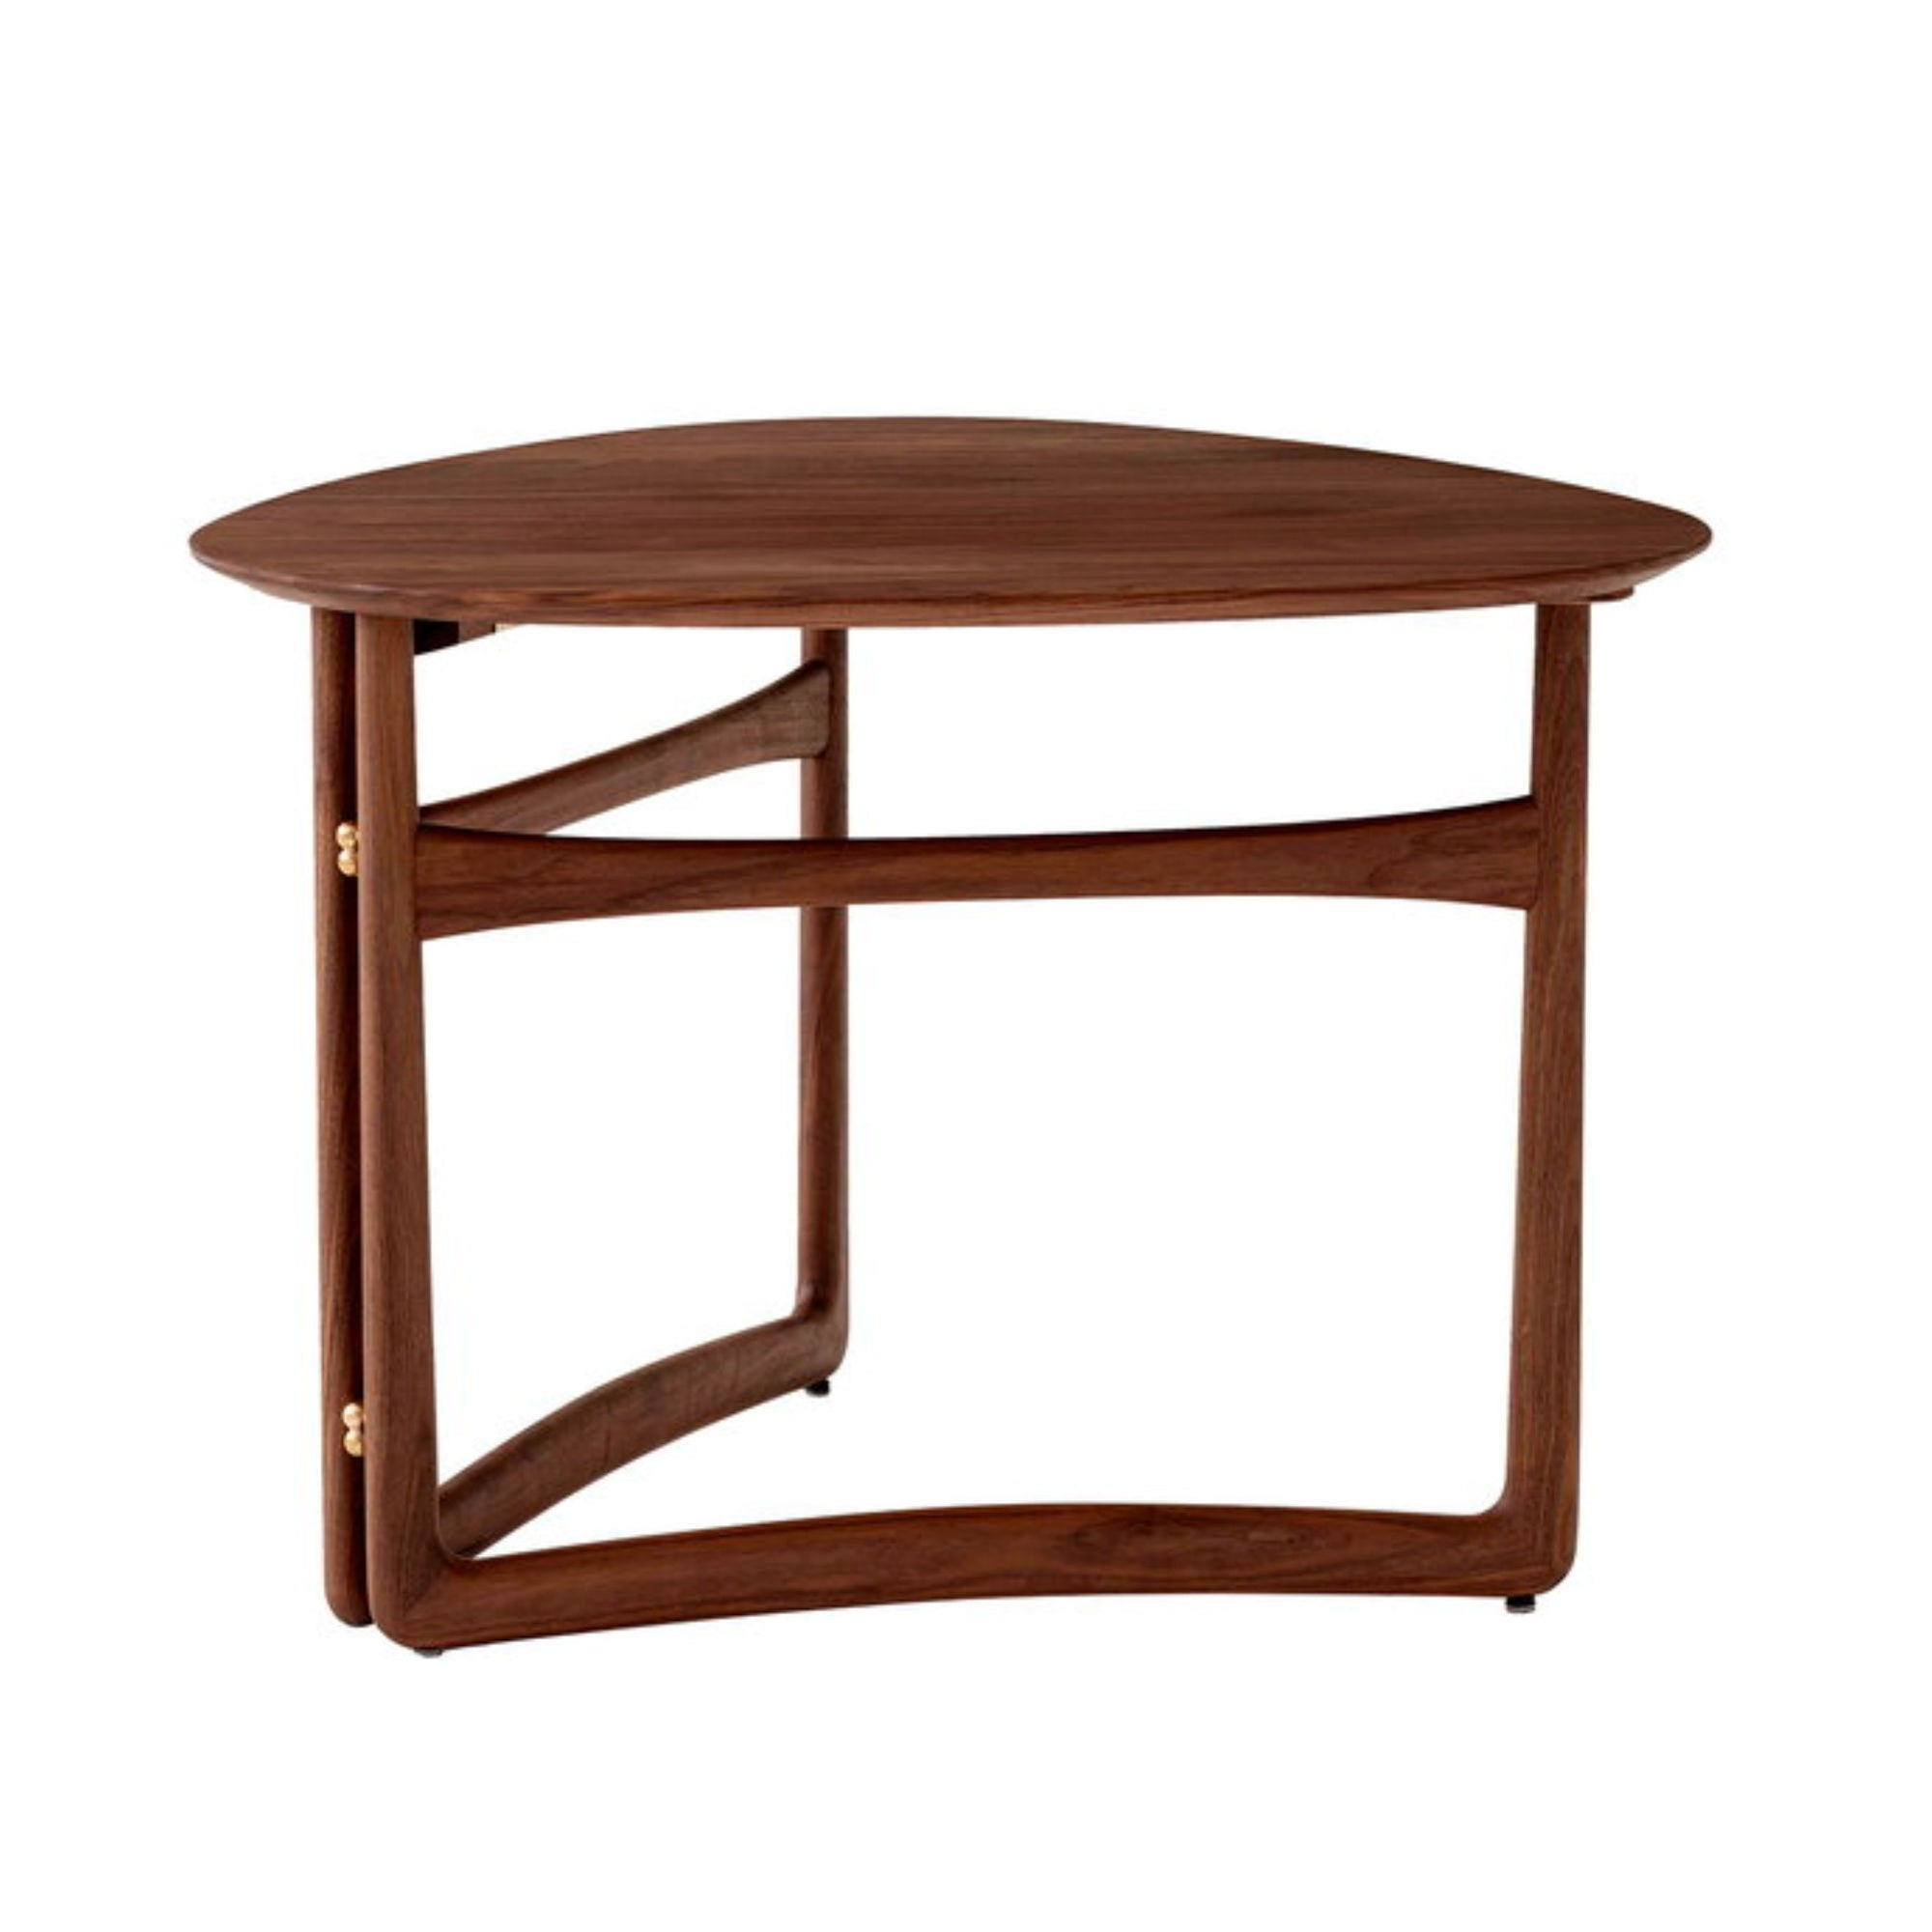 &Tradition Drop Leaf HM5 side table, oiled walnut